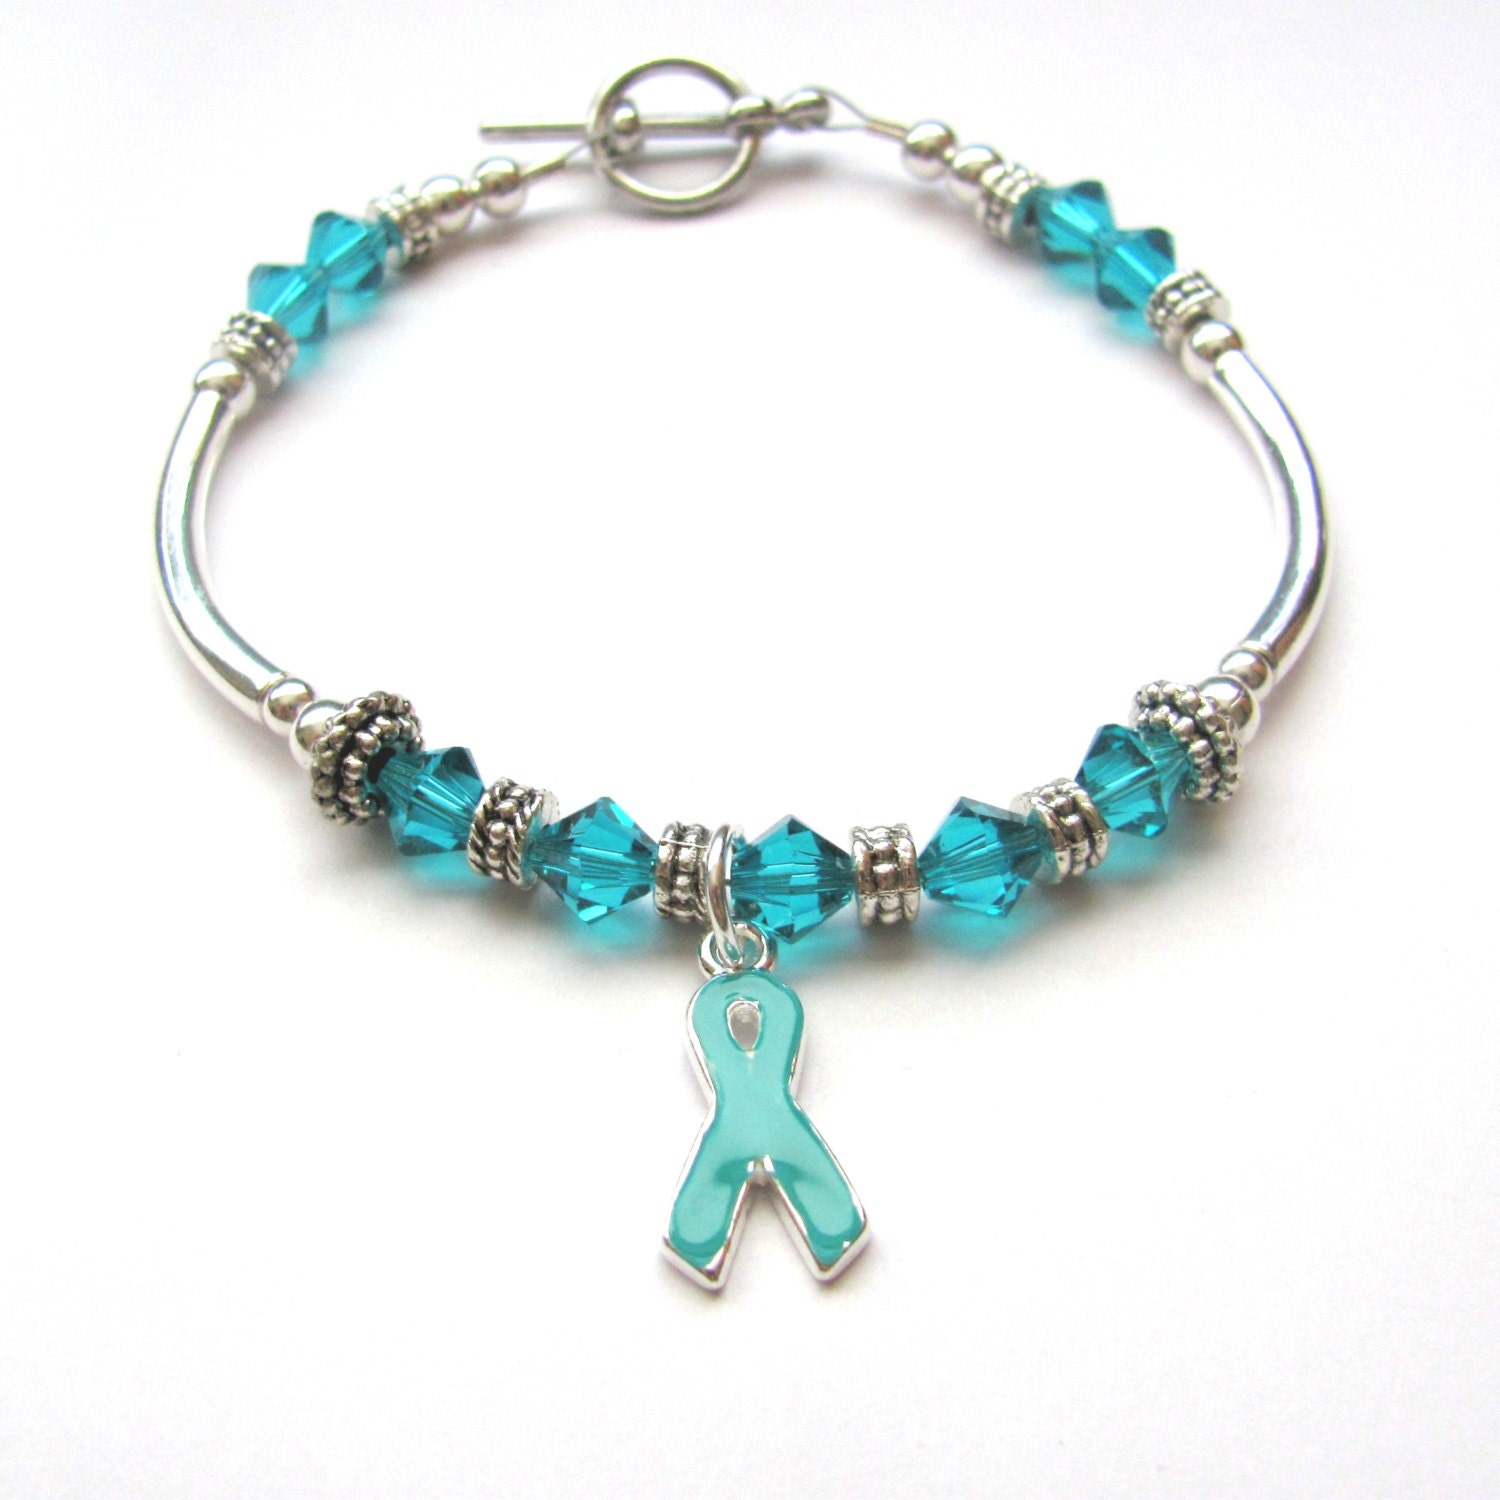 ocd bracelet dp your compulsive amazon own handmade awareness obsessive disorder charm pick com